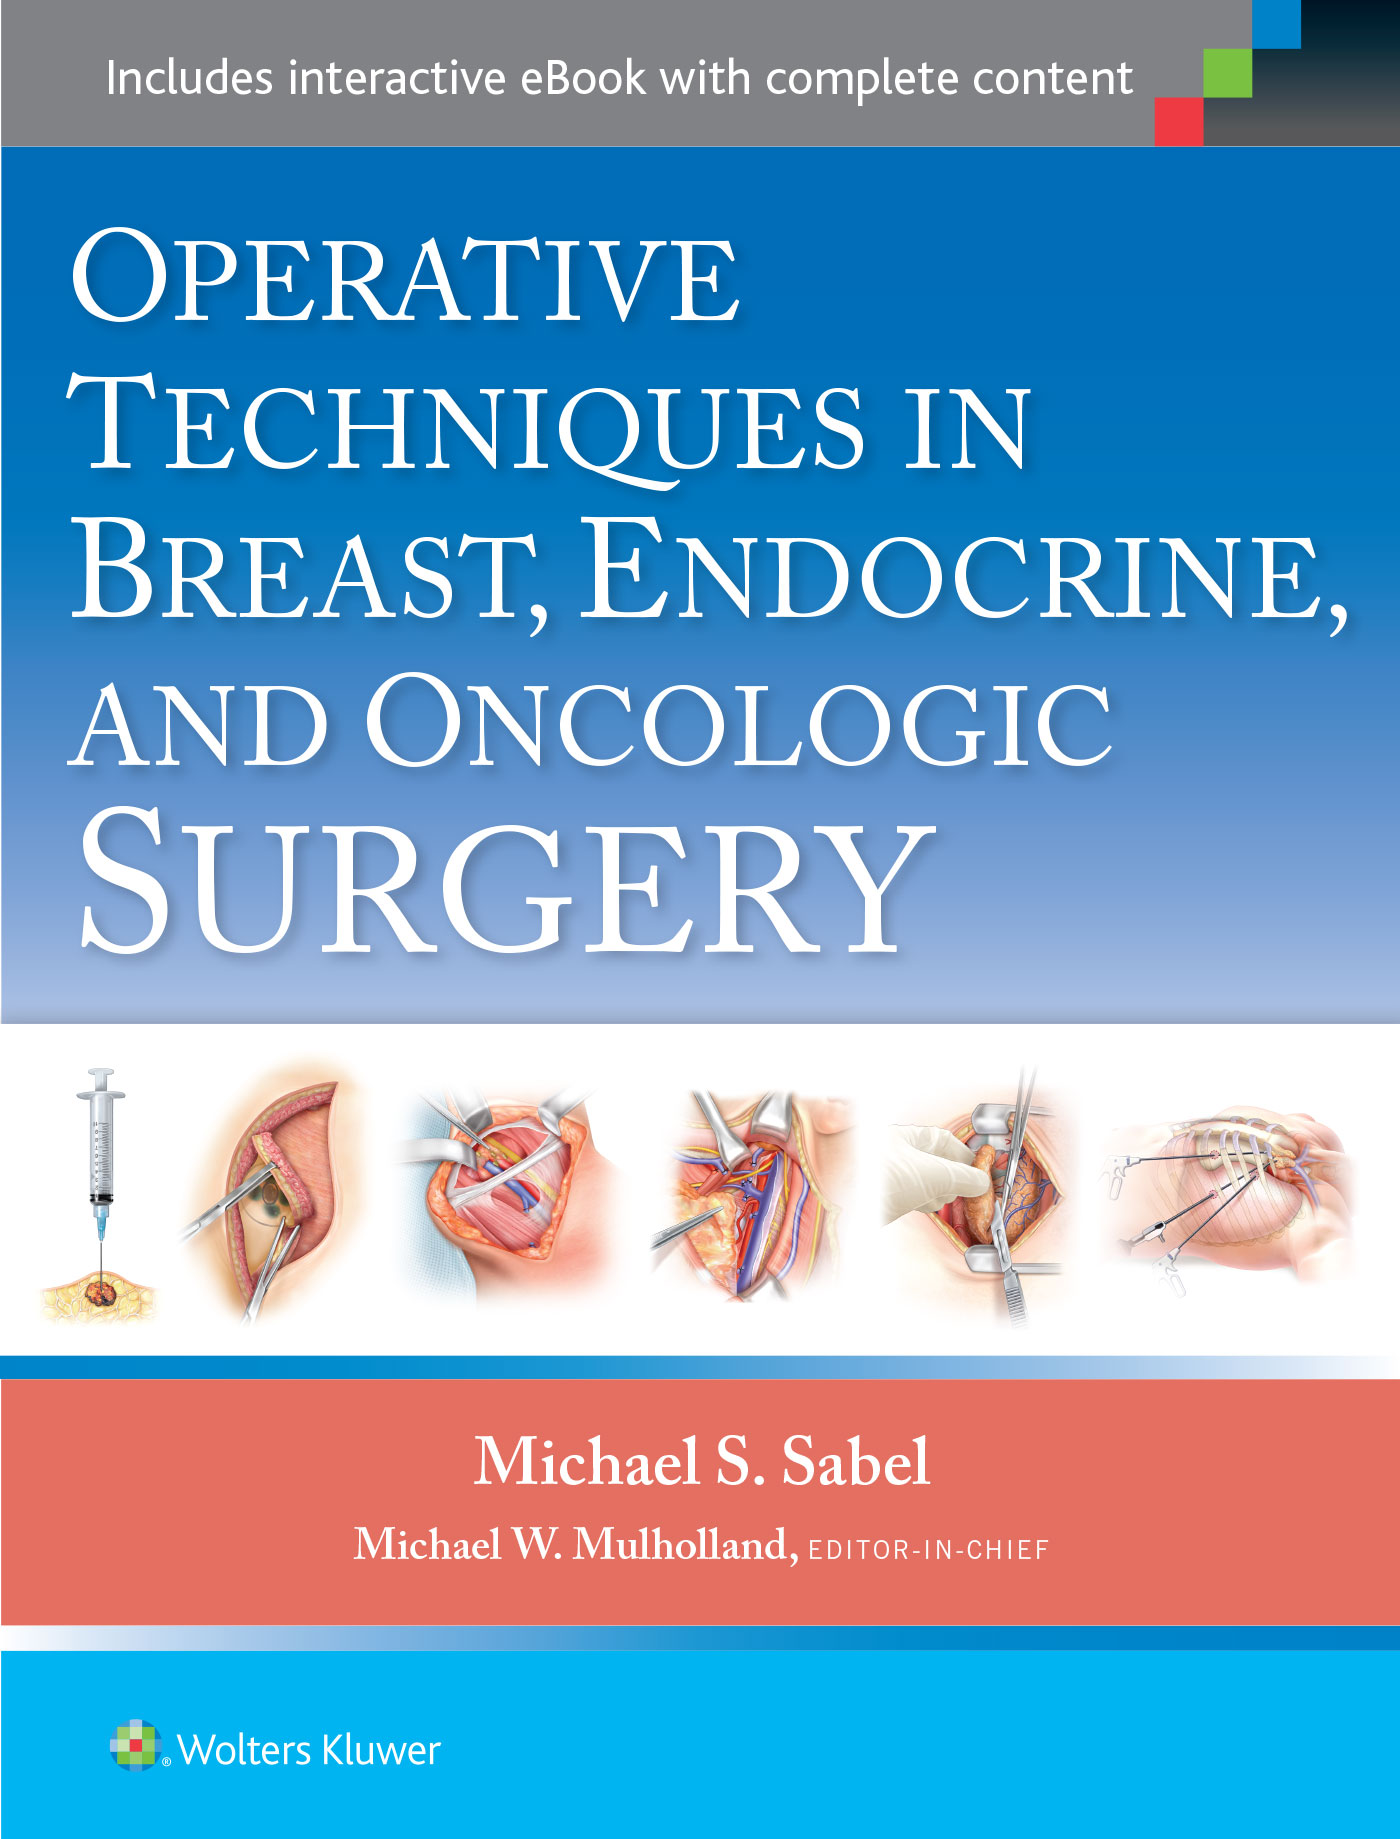 Operative Techniques in Breast, Endocrine, and Oncologic        Surgery